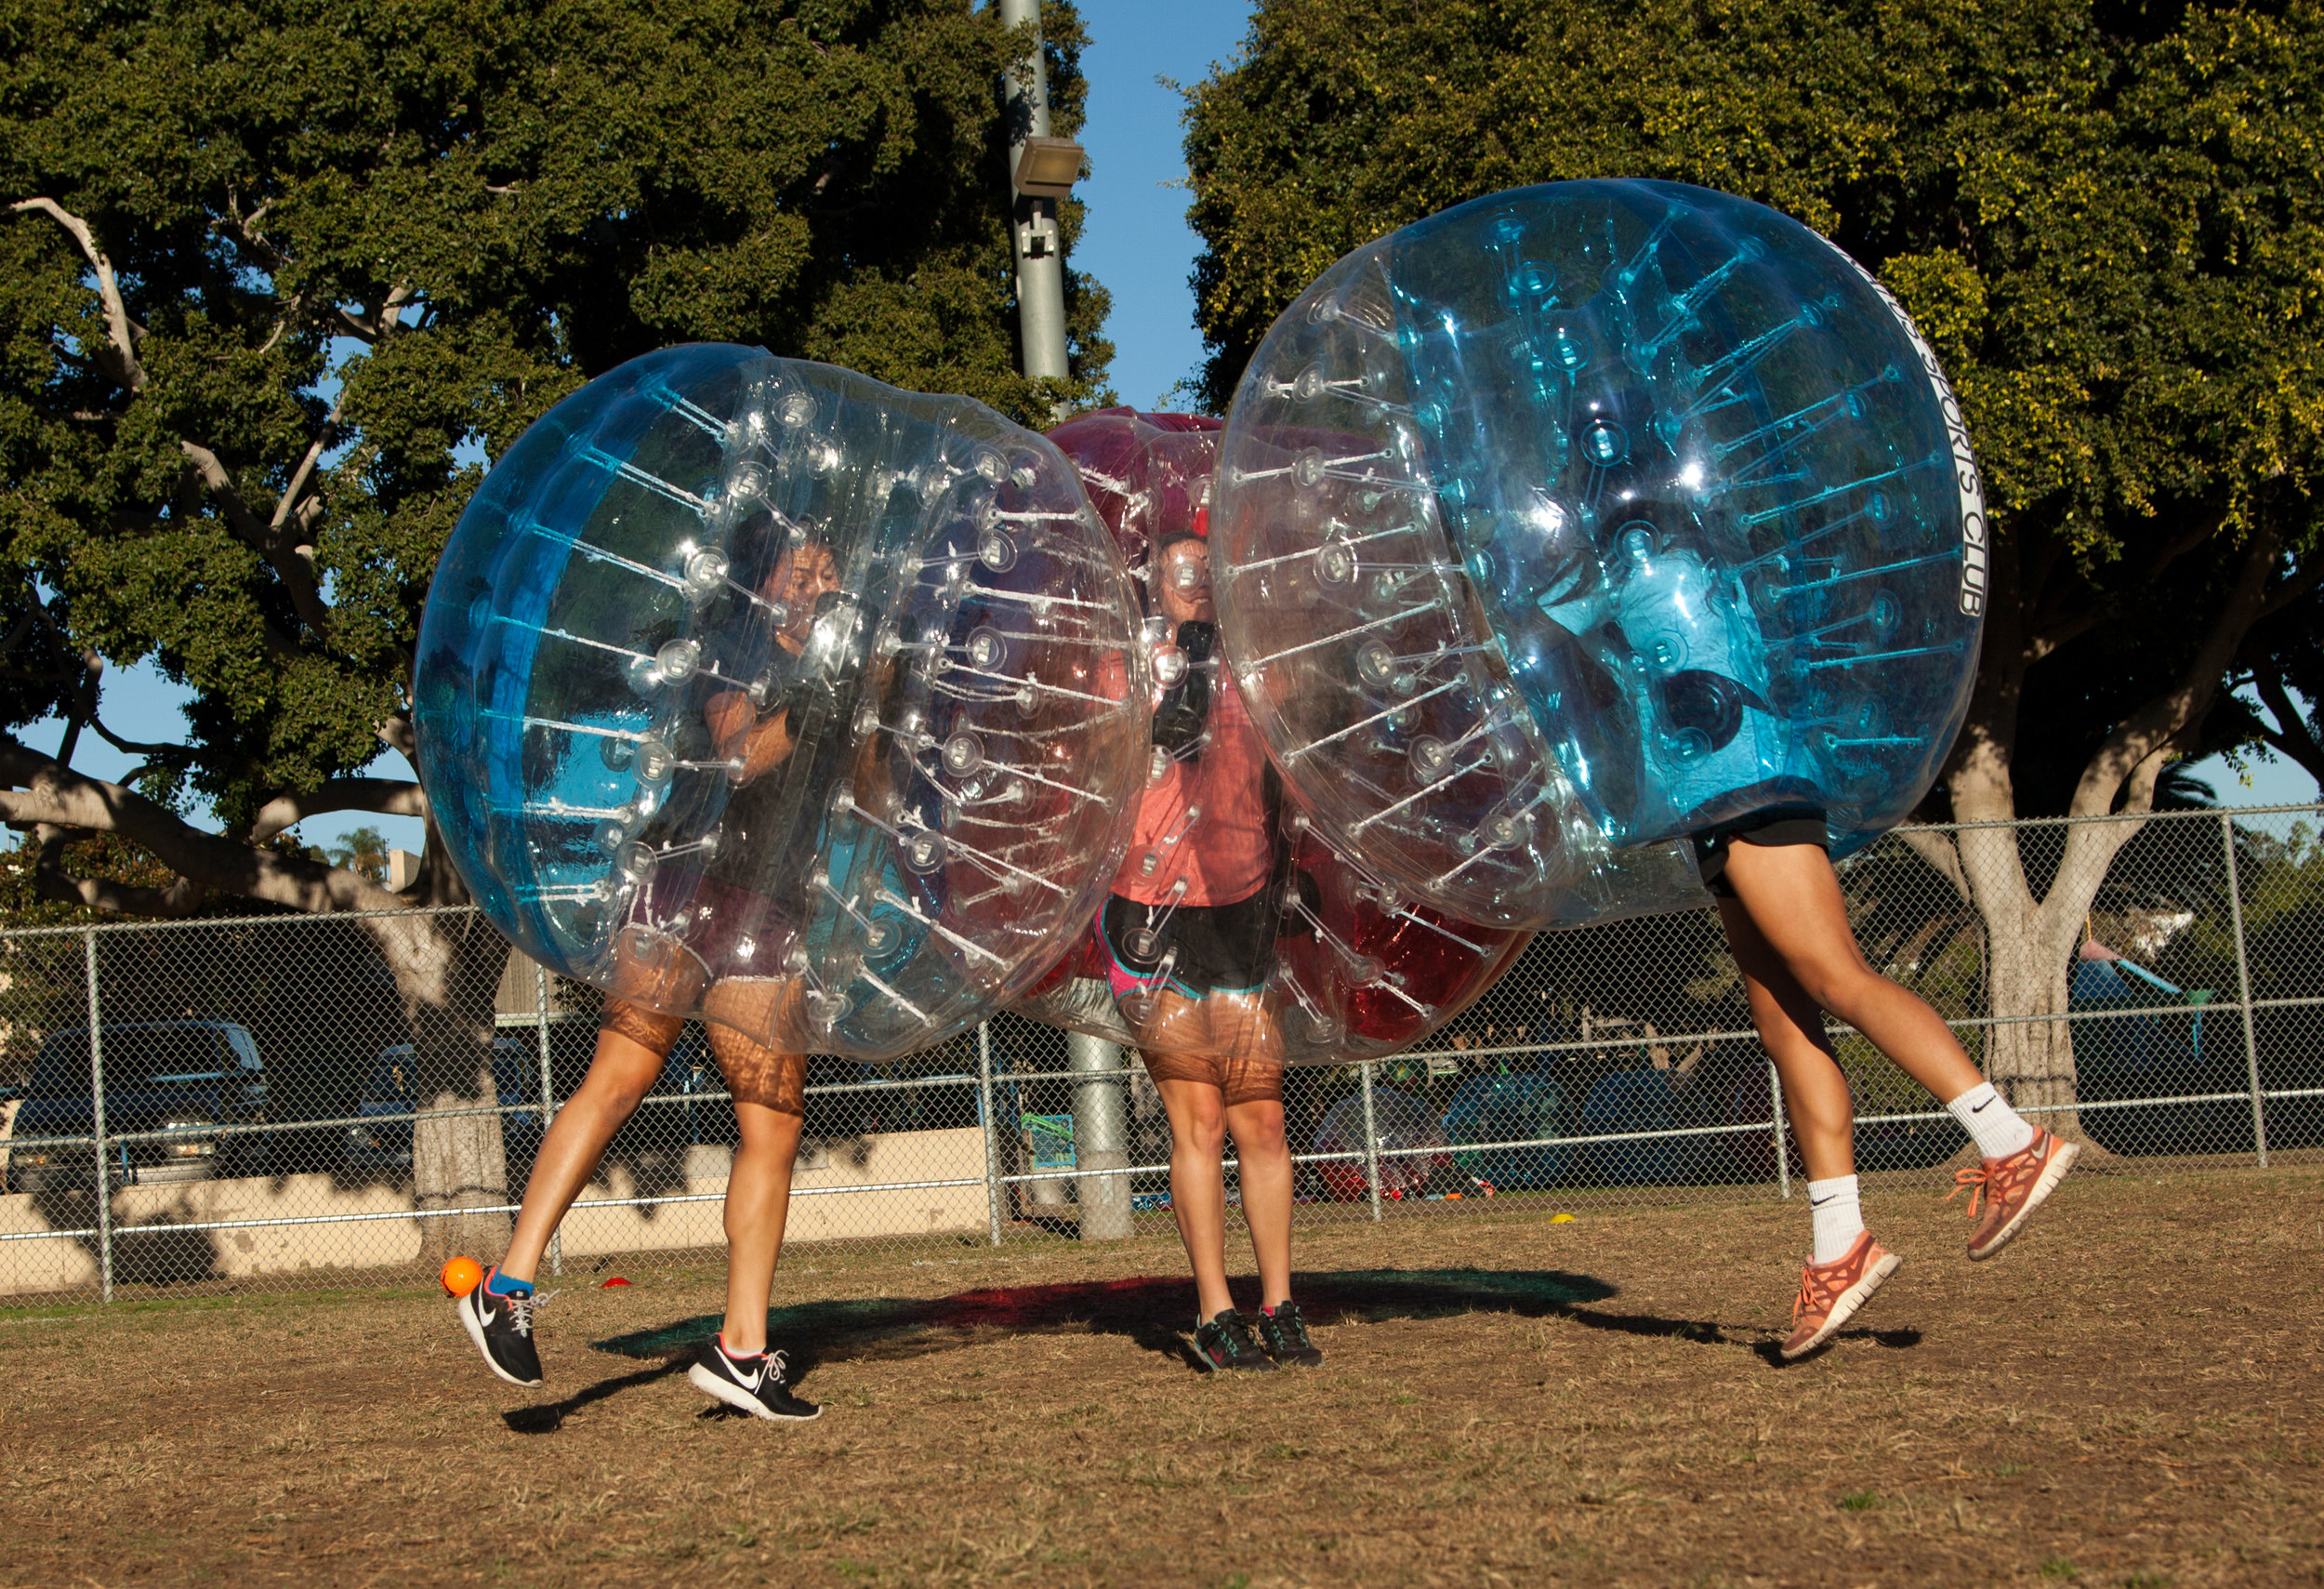 It's the amazing triple bubble soccer airbump at a park in West Hollywood